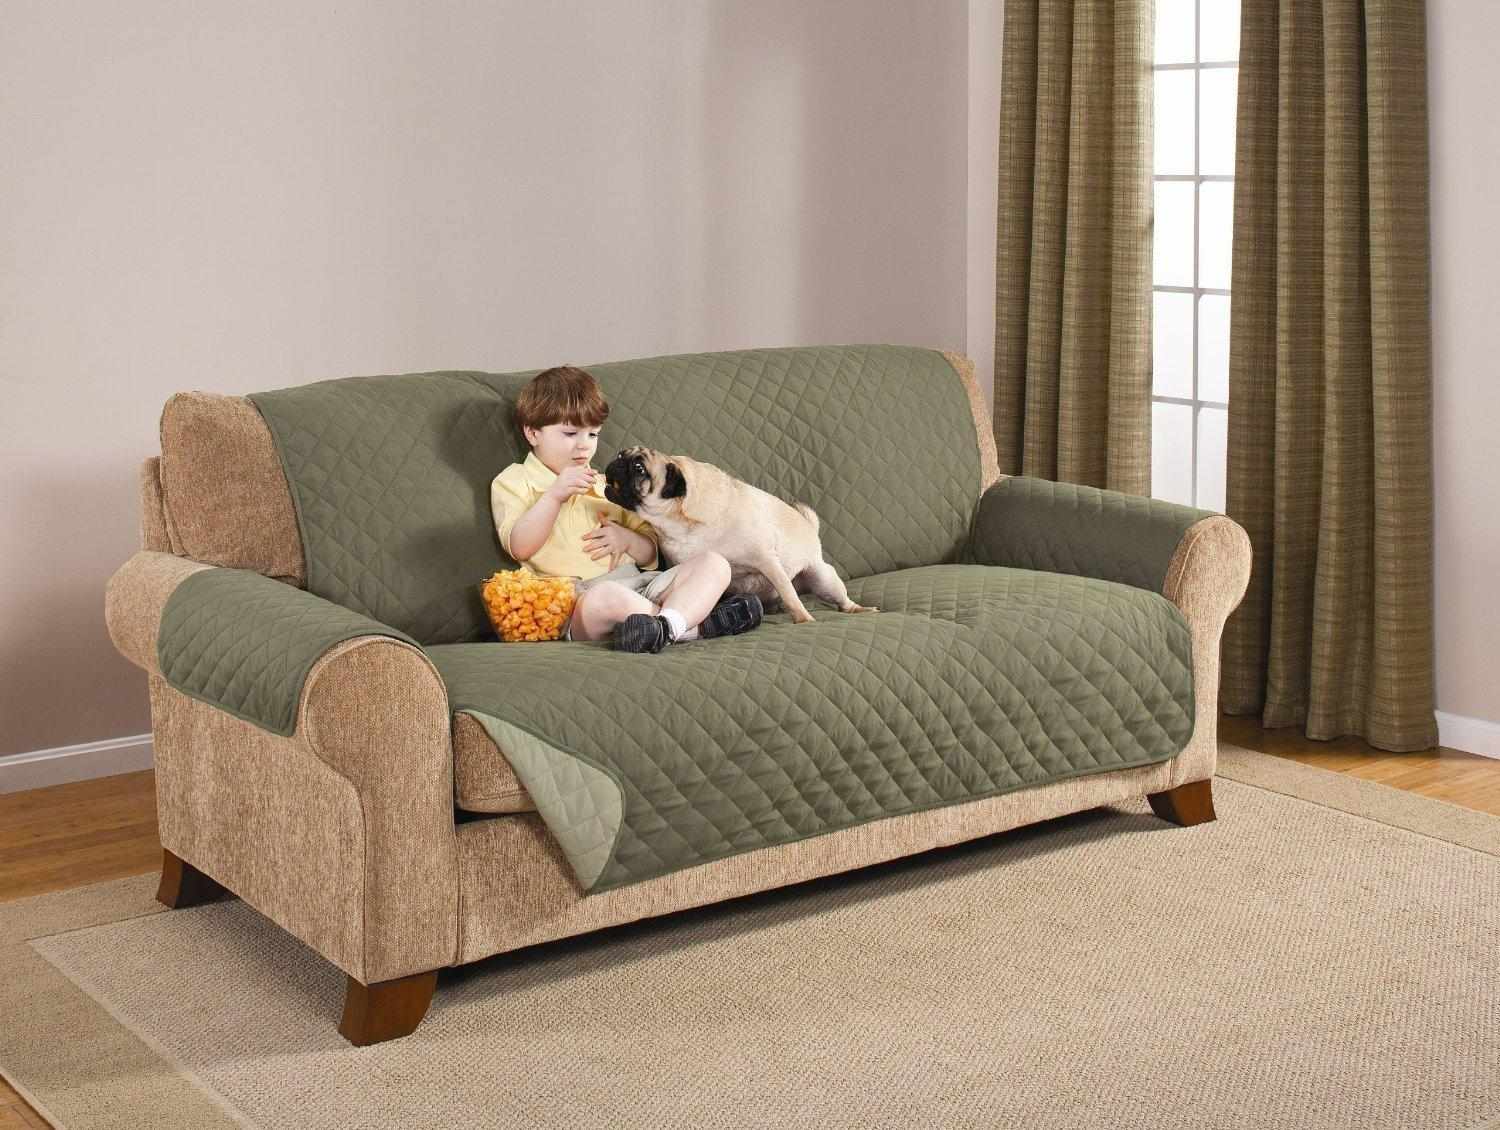 Top 10 Best Sofa Covers For Pets – Pet Sofa Covers To Keep Clean With Regard To Sofa Settee Covers (View 14 of 22)